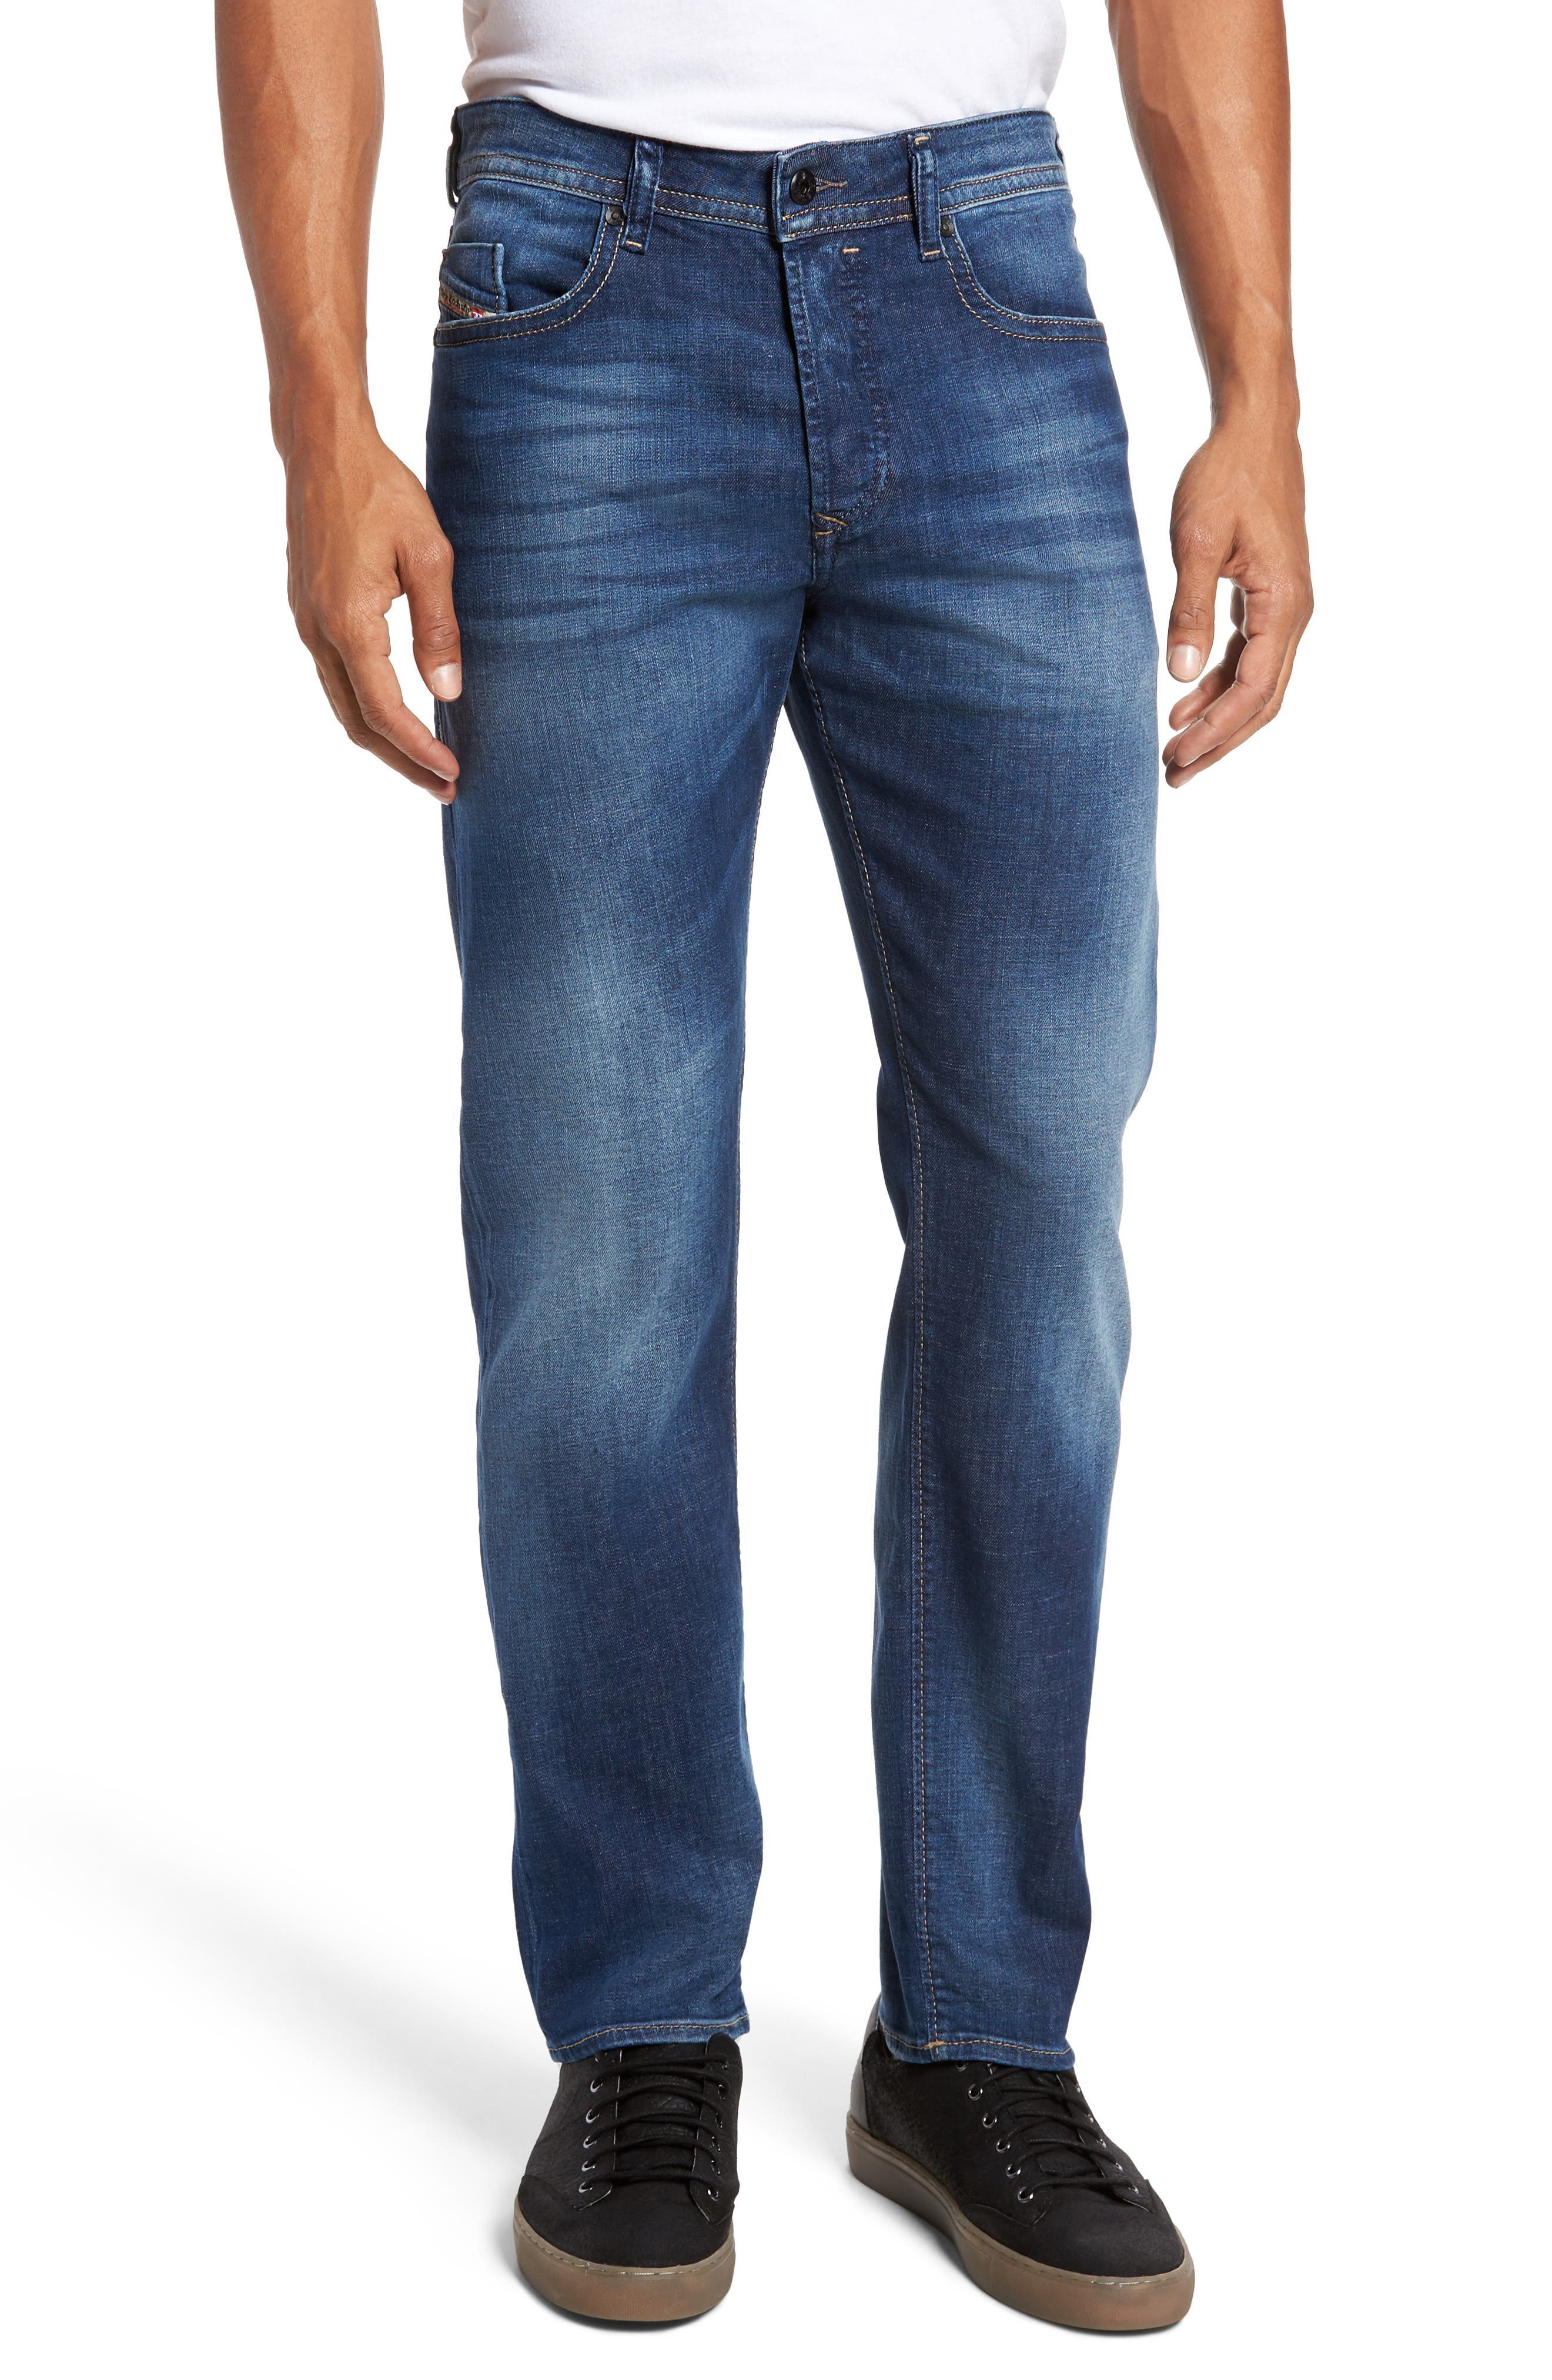 Buster Slim Straight Leg Jeans,                         Main,                         color, 084Gr